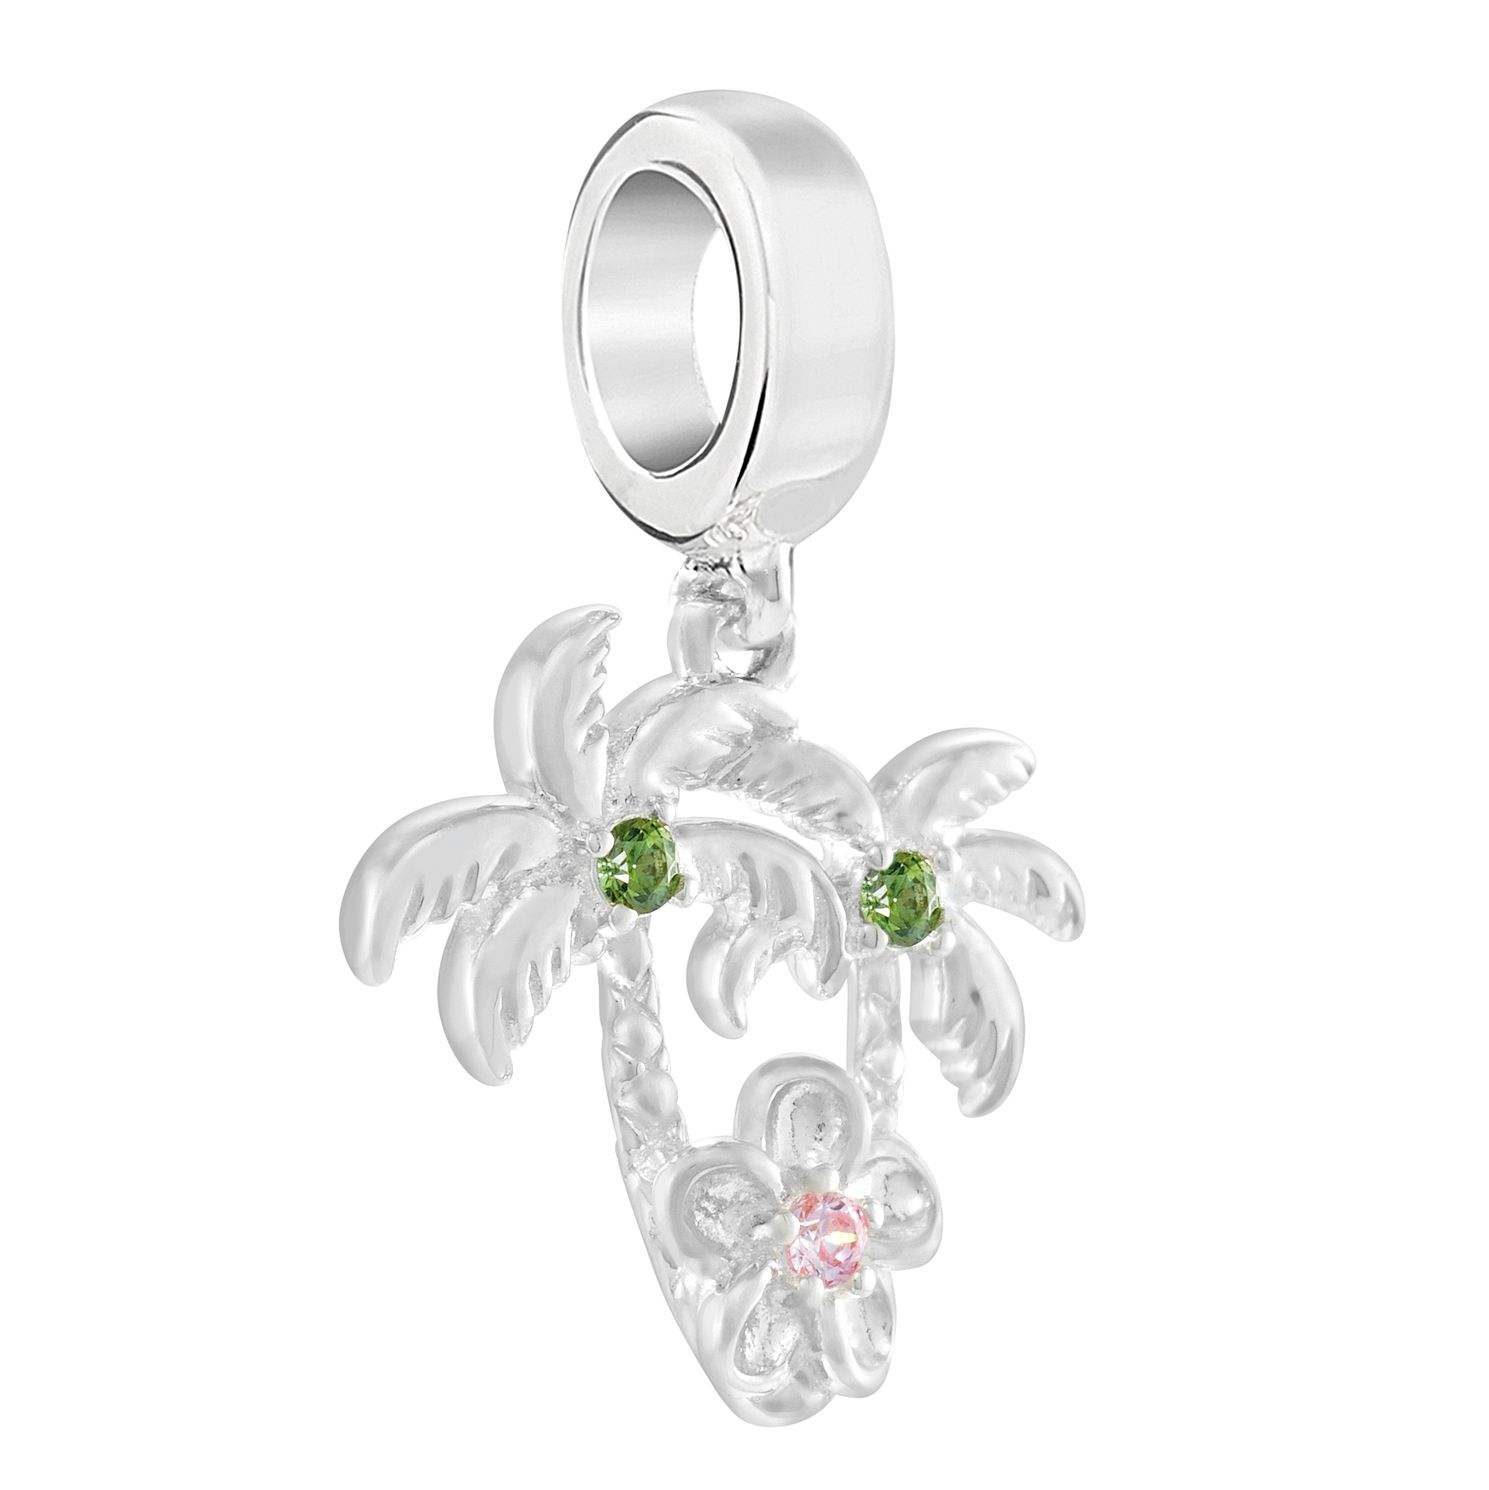 Chamilia Plumeria Palm Trees Morganite Charm - Product number 3171957